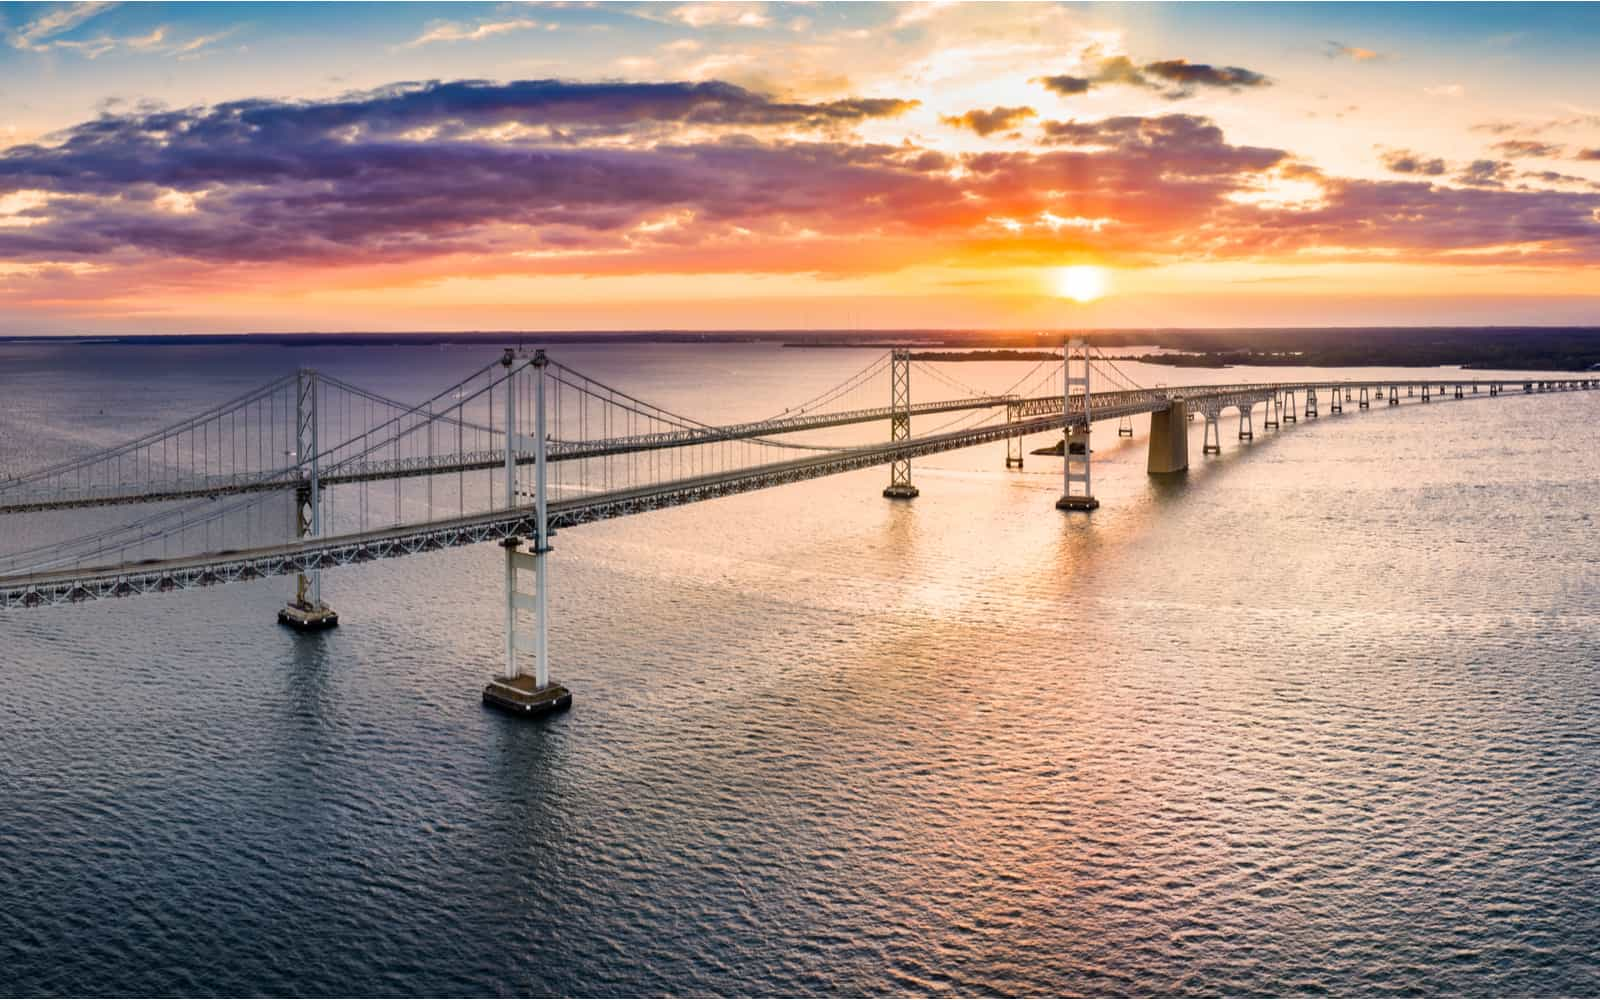 Chesapeake-Bay-Bridge - Meet The Founder of Washington Nutrition & Counseling Group